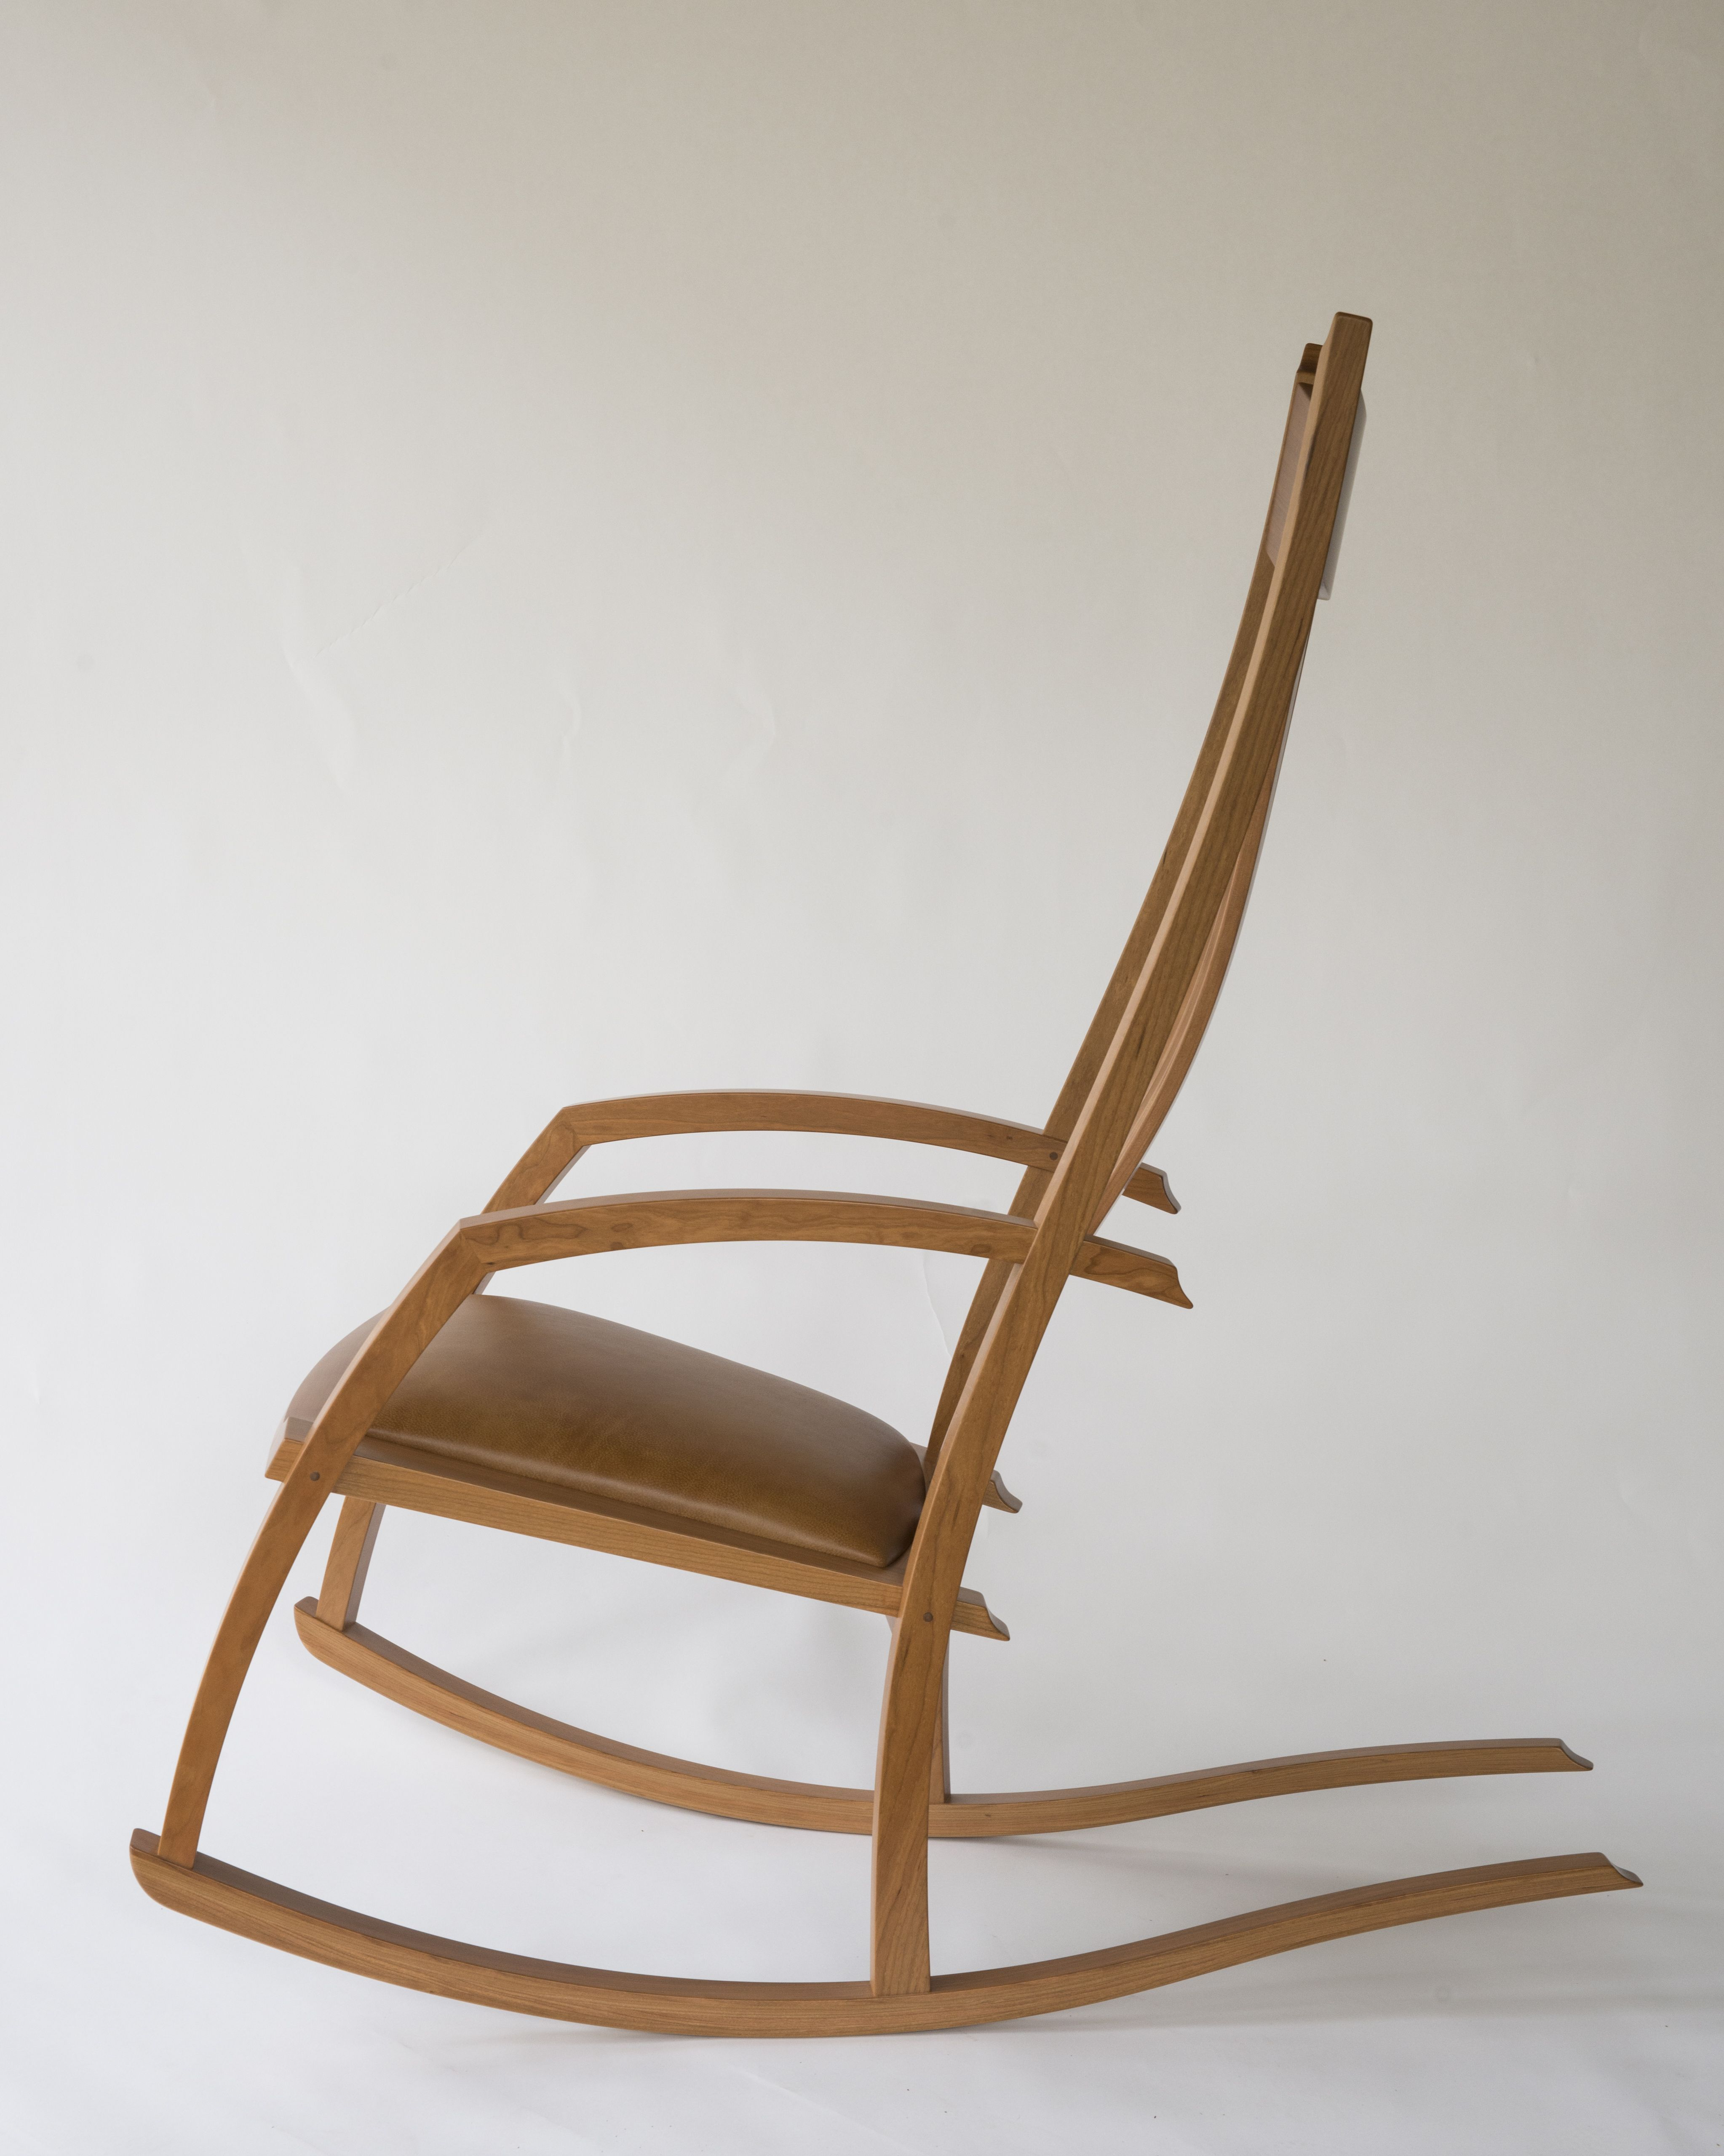 Buy Hand Crafted Scandinavian Style Rocking Chair With Long